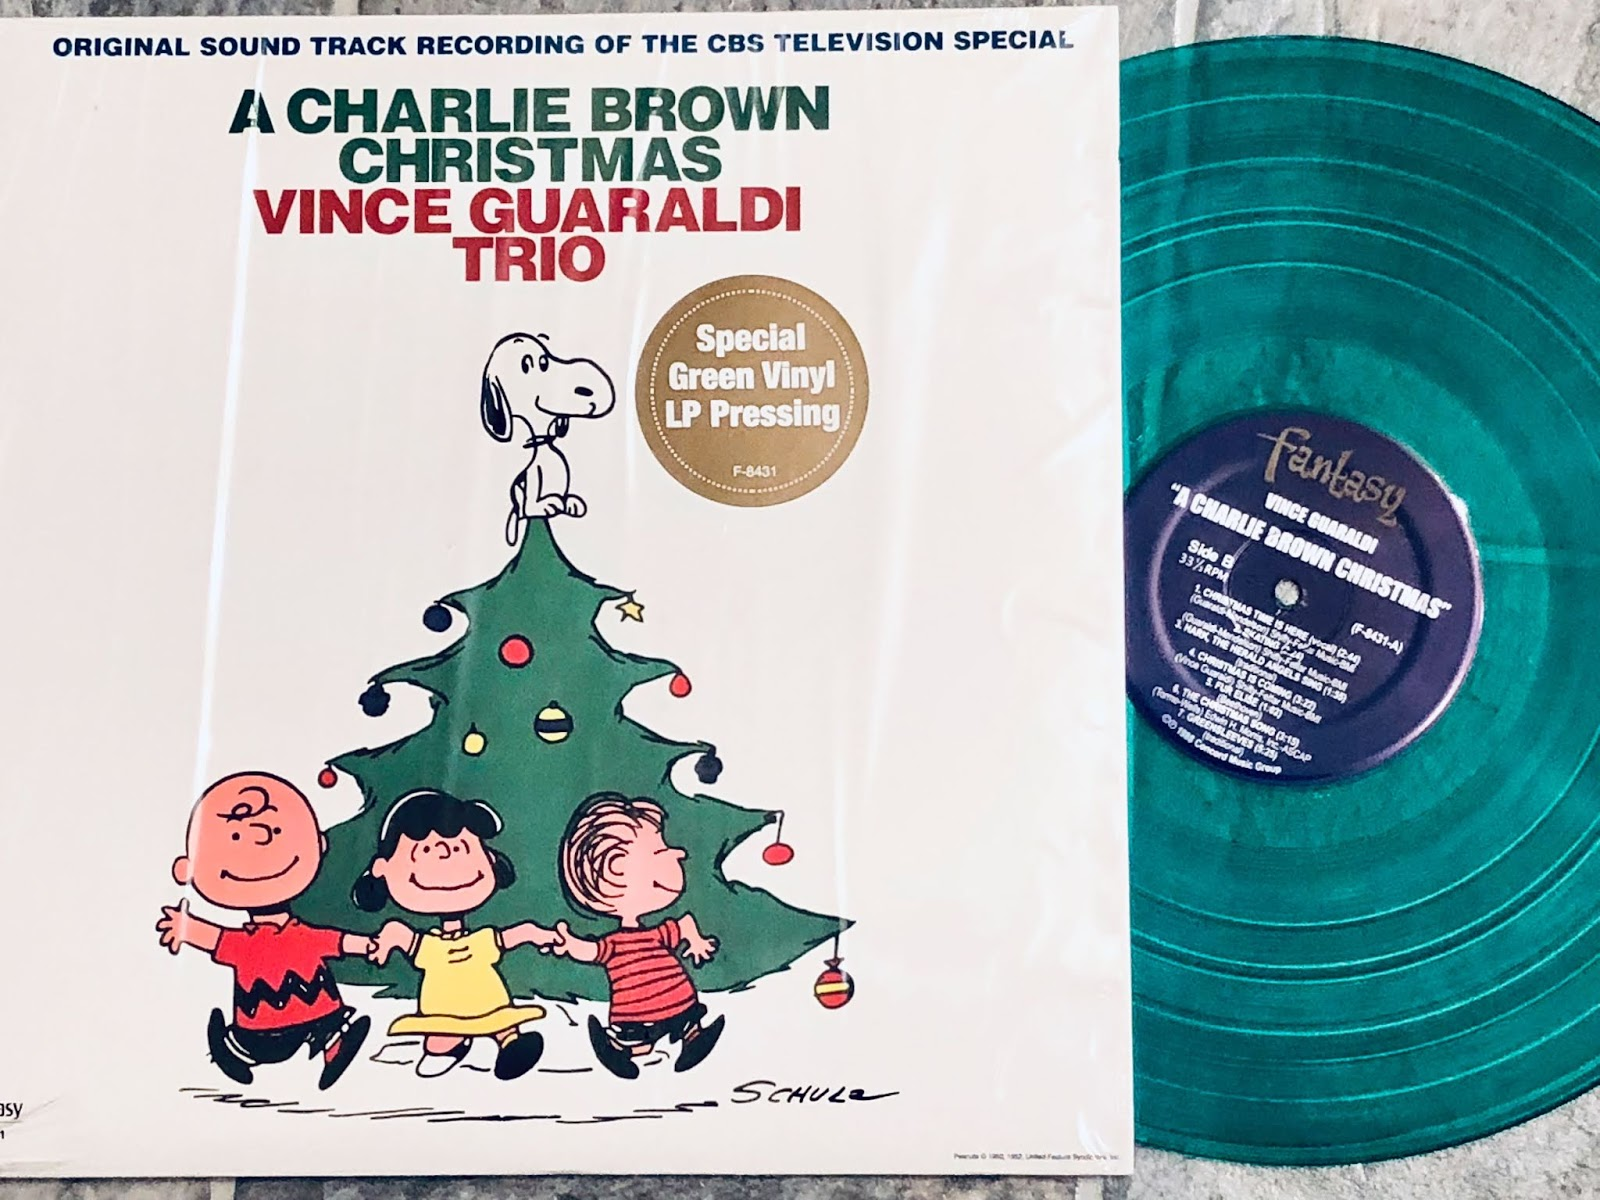 Charlie Brown Christmas Soundtrack.Amy Clary A Charlie Brown Christmas Soundtrack Now On Vinyl